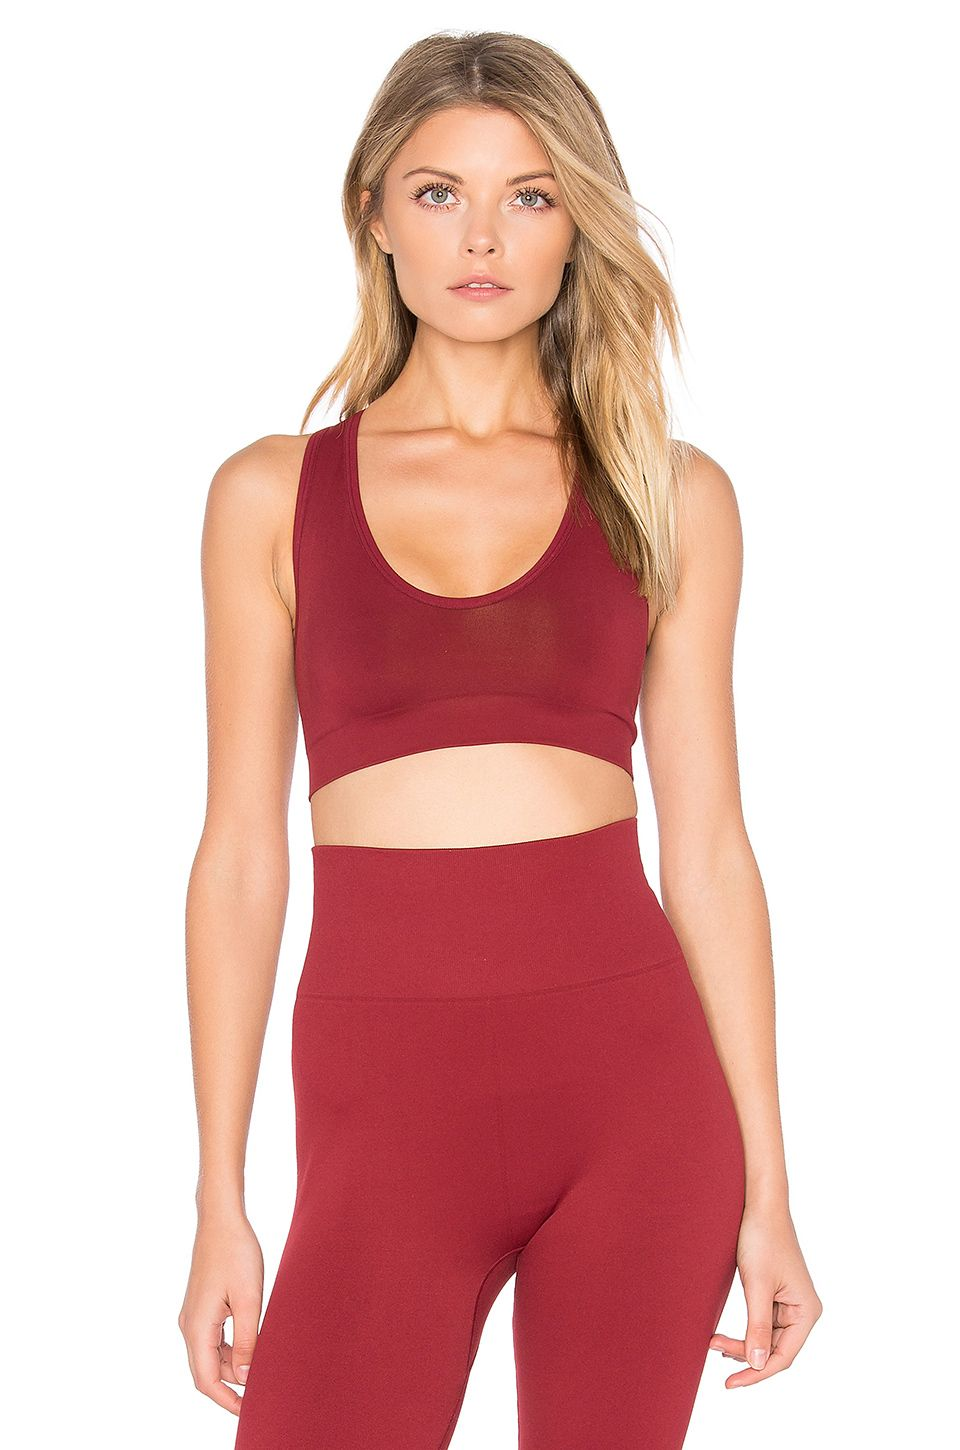 Touche LA Grace Sports Bra in Currant Red sports bra